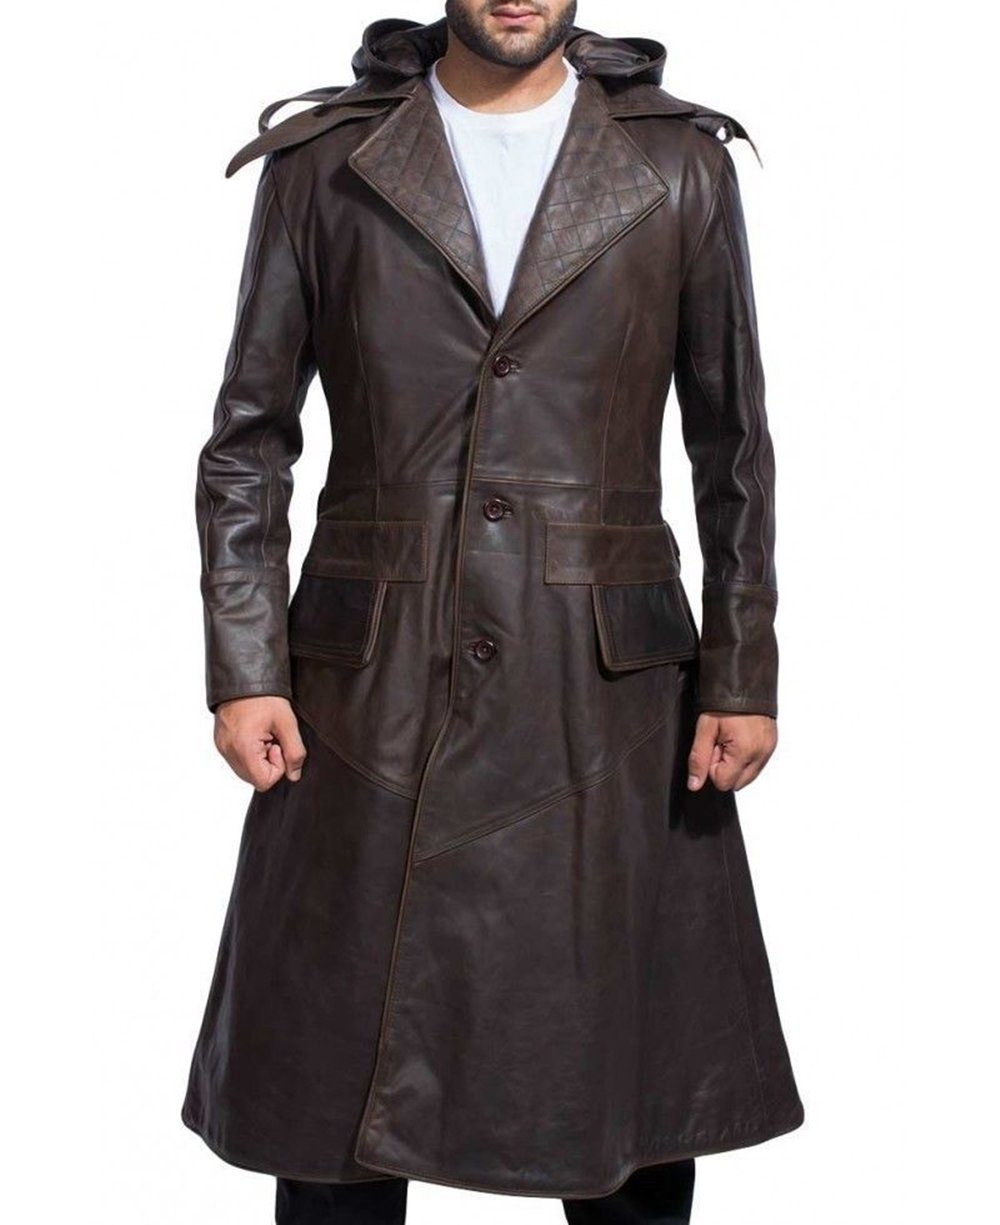 Premium Leather Products Jacob Frye Real Leather Long Coat Brown Long Trench Hoodie Coat With Detachable Hood Men (X-Large)